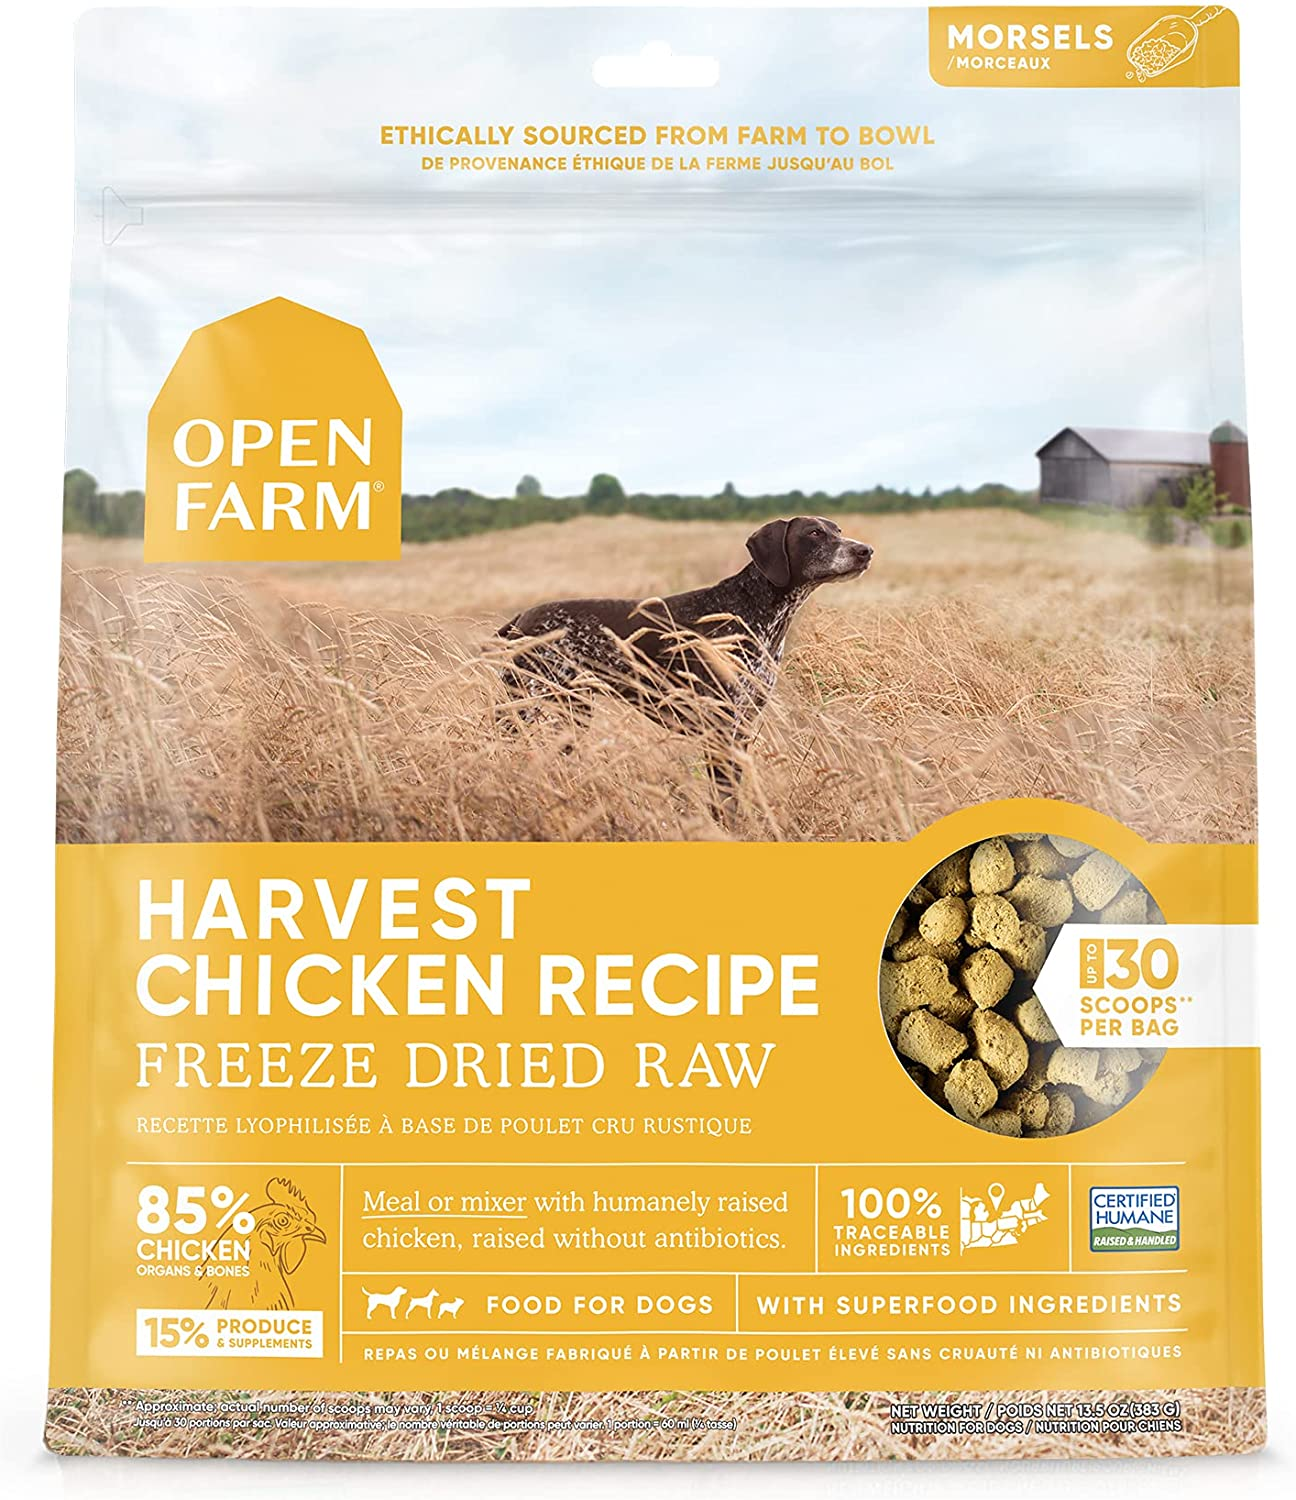 Open Farm Freeze Dried Raw Dog Food, Humanely Raised Meat Recipe with Non-GMO Superfoods and No Artificial Flavors or Preservatives, Harvest Chicken Recipe Freeze Dried - 3.5oz